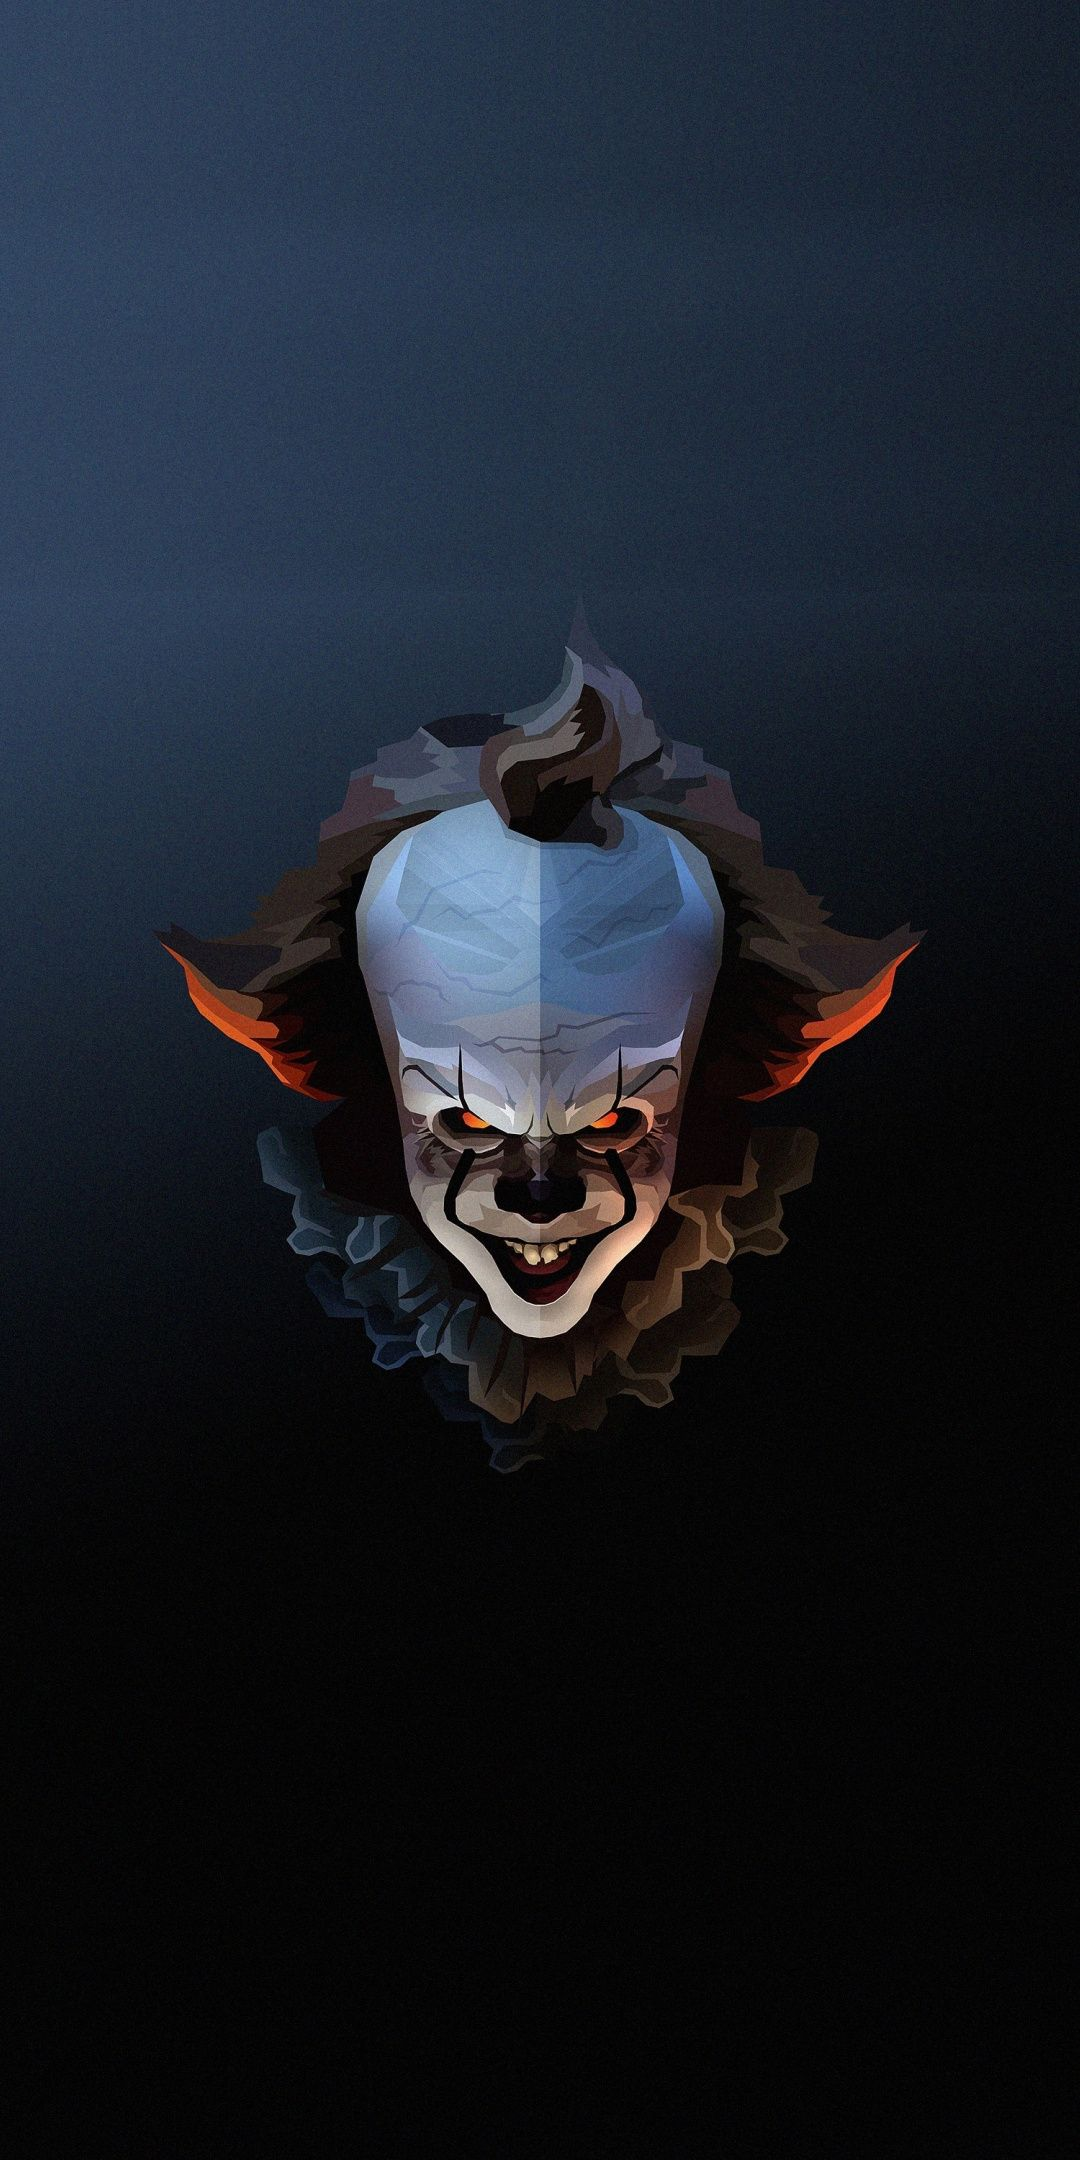 Pennywise The Clown Halloween Artwork 1080x2160 Wallpaper Halloween Wallpaper Iphone Halloween Artwork Pennywise The Clown